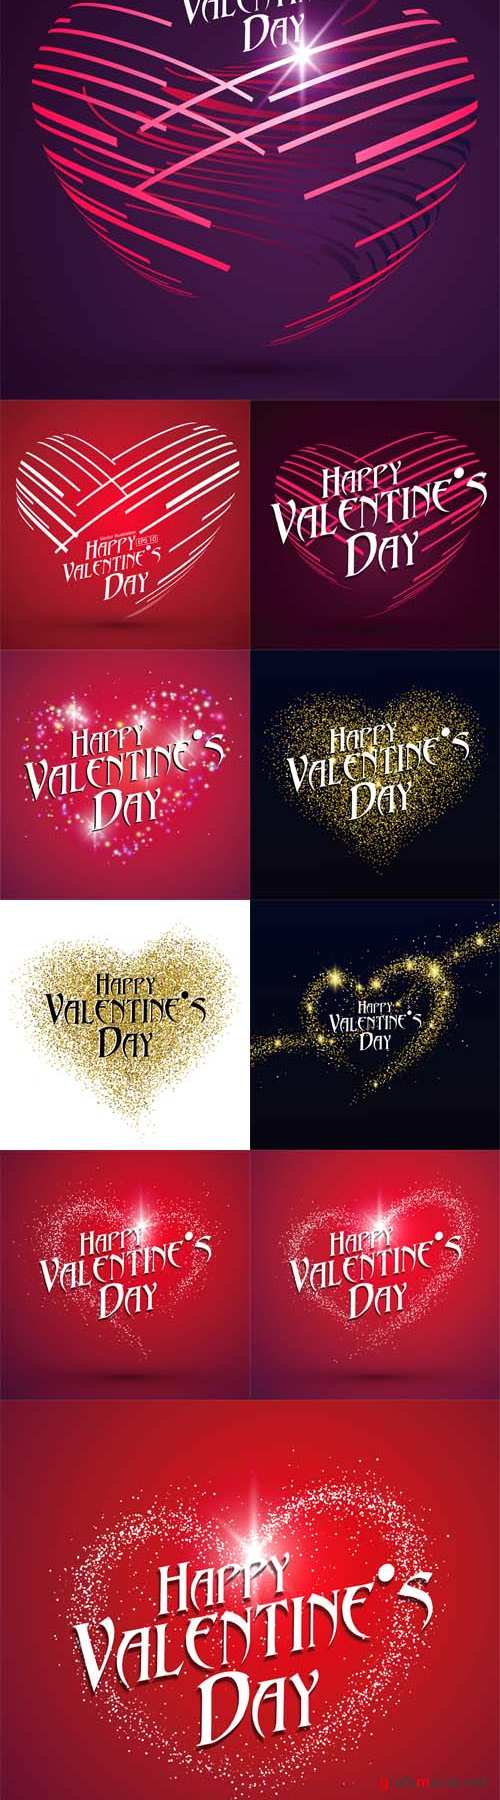 Vector Abstract heart-shaped pattern. Valentines Day greeting cards available